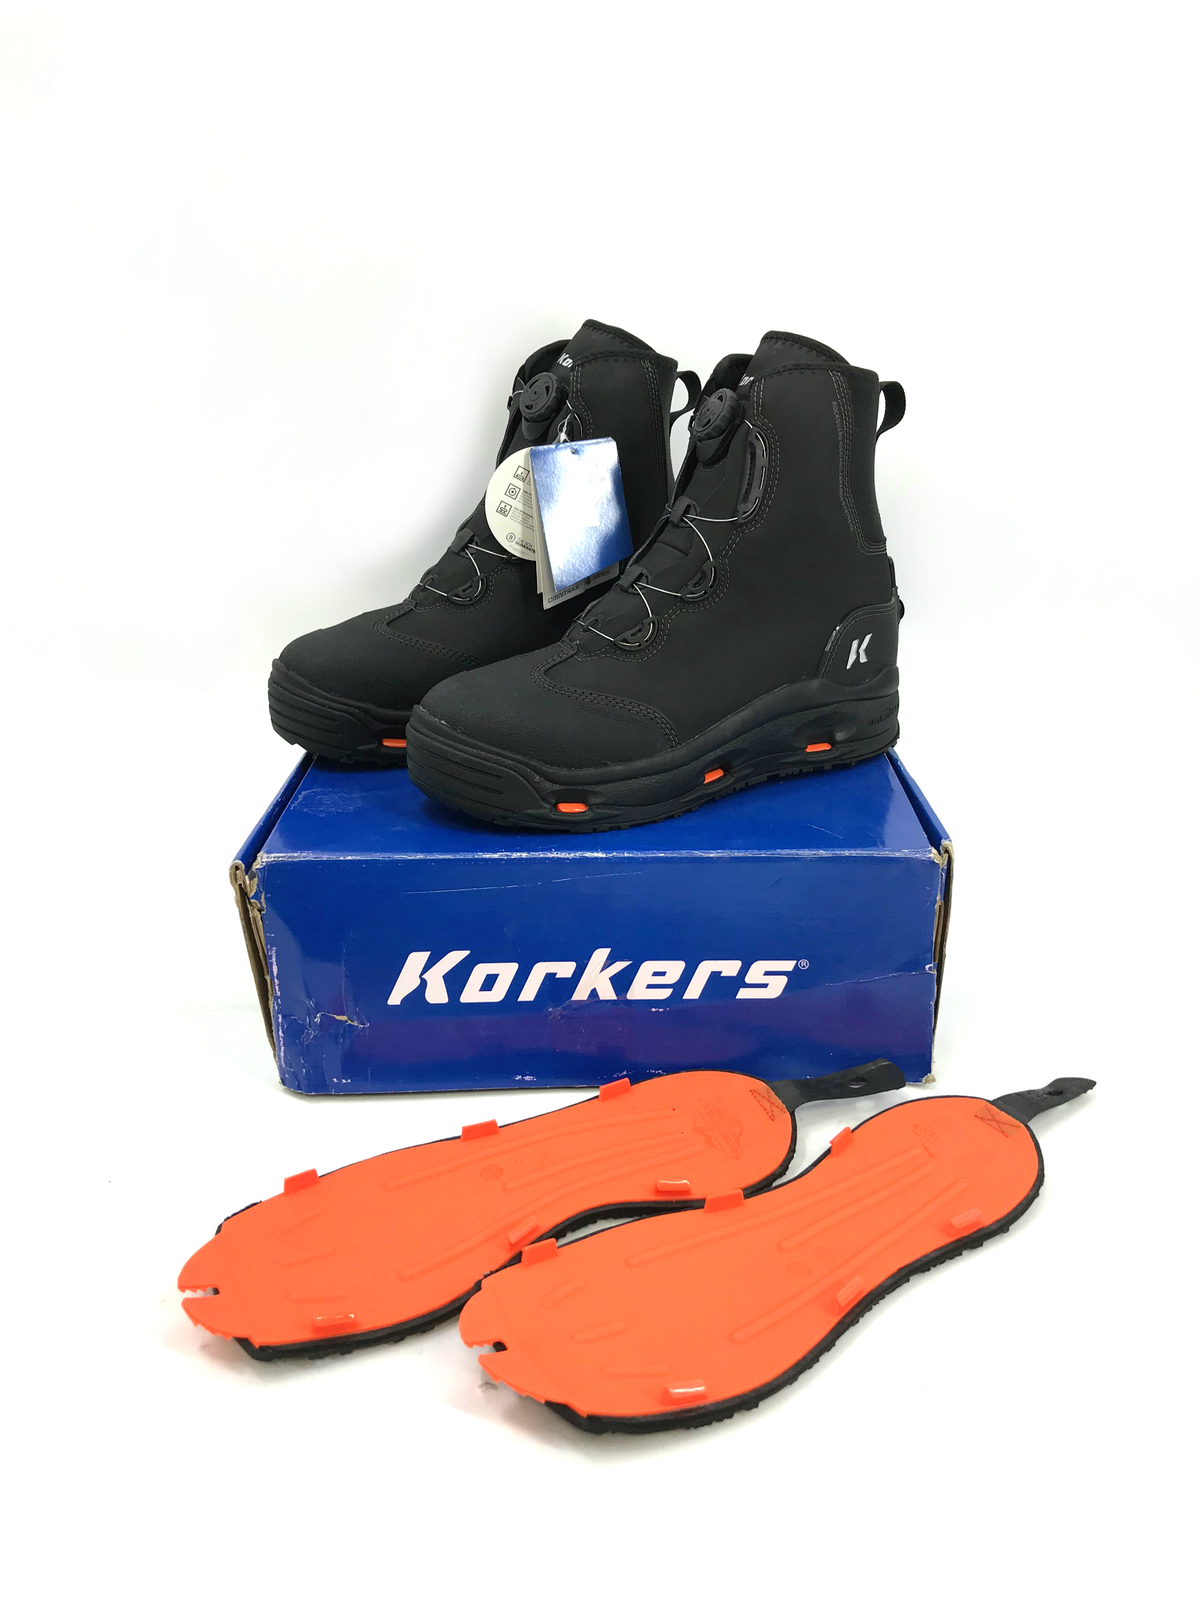 2 SOLES SIZE 12 KORKERS TERROR RIDGE WADING BOOT STUDDED KLING-ON RUBBER